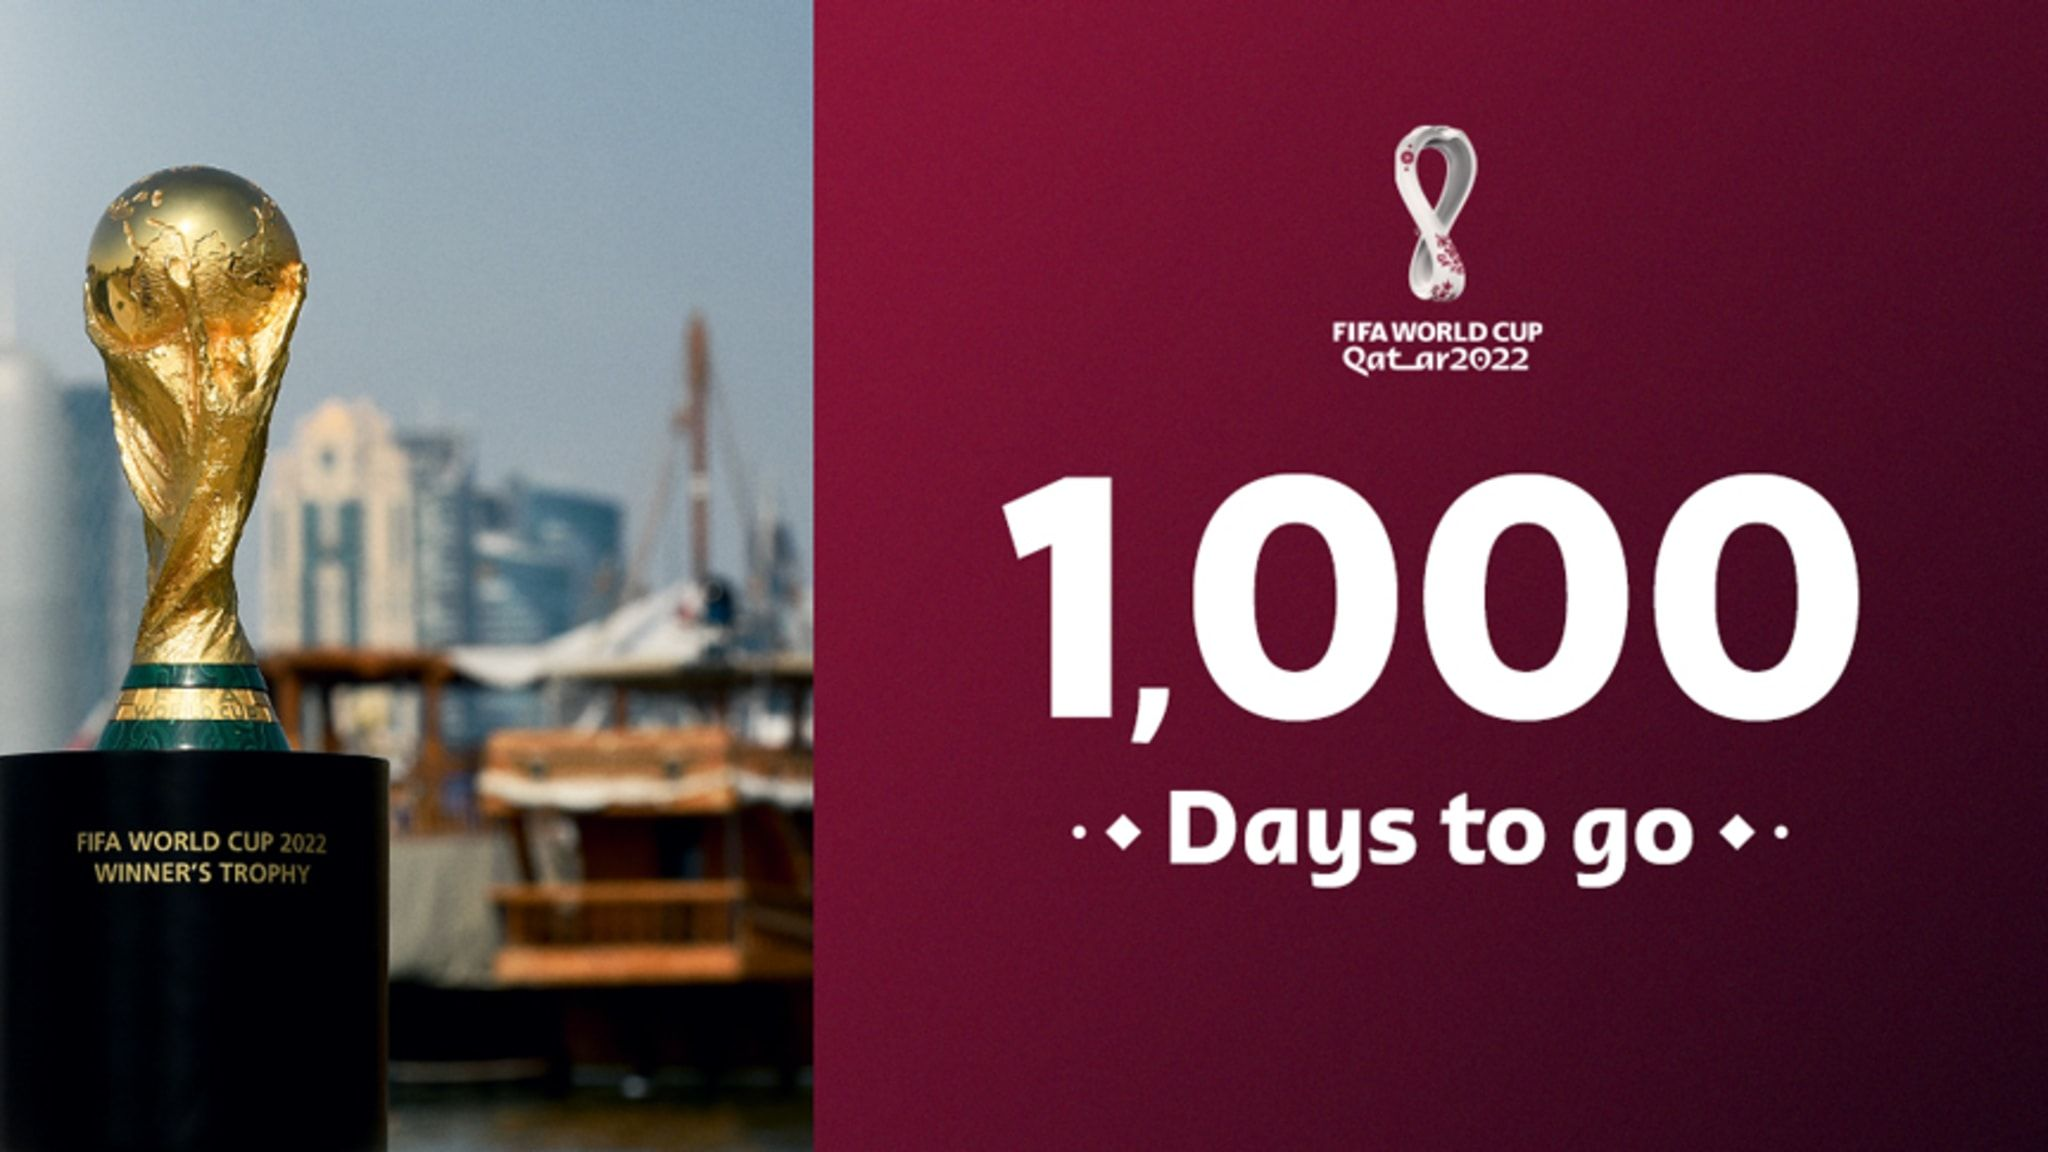 Qatar on track to the world with just 1000 days to